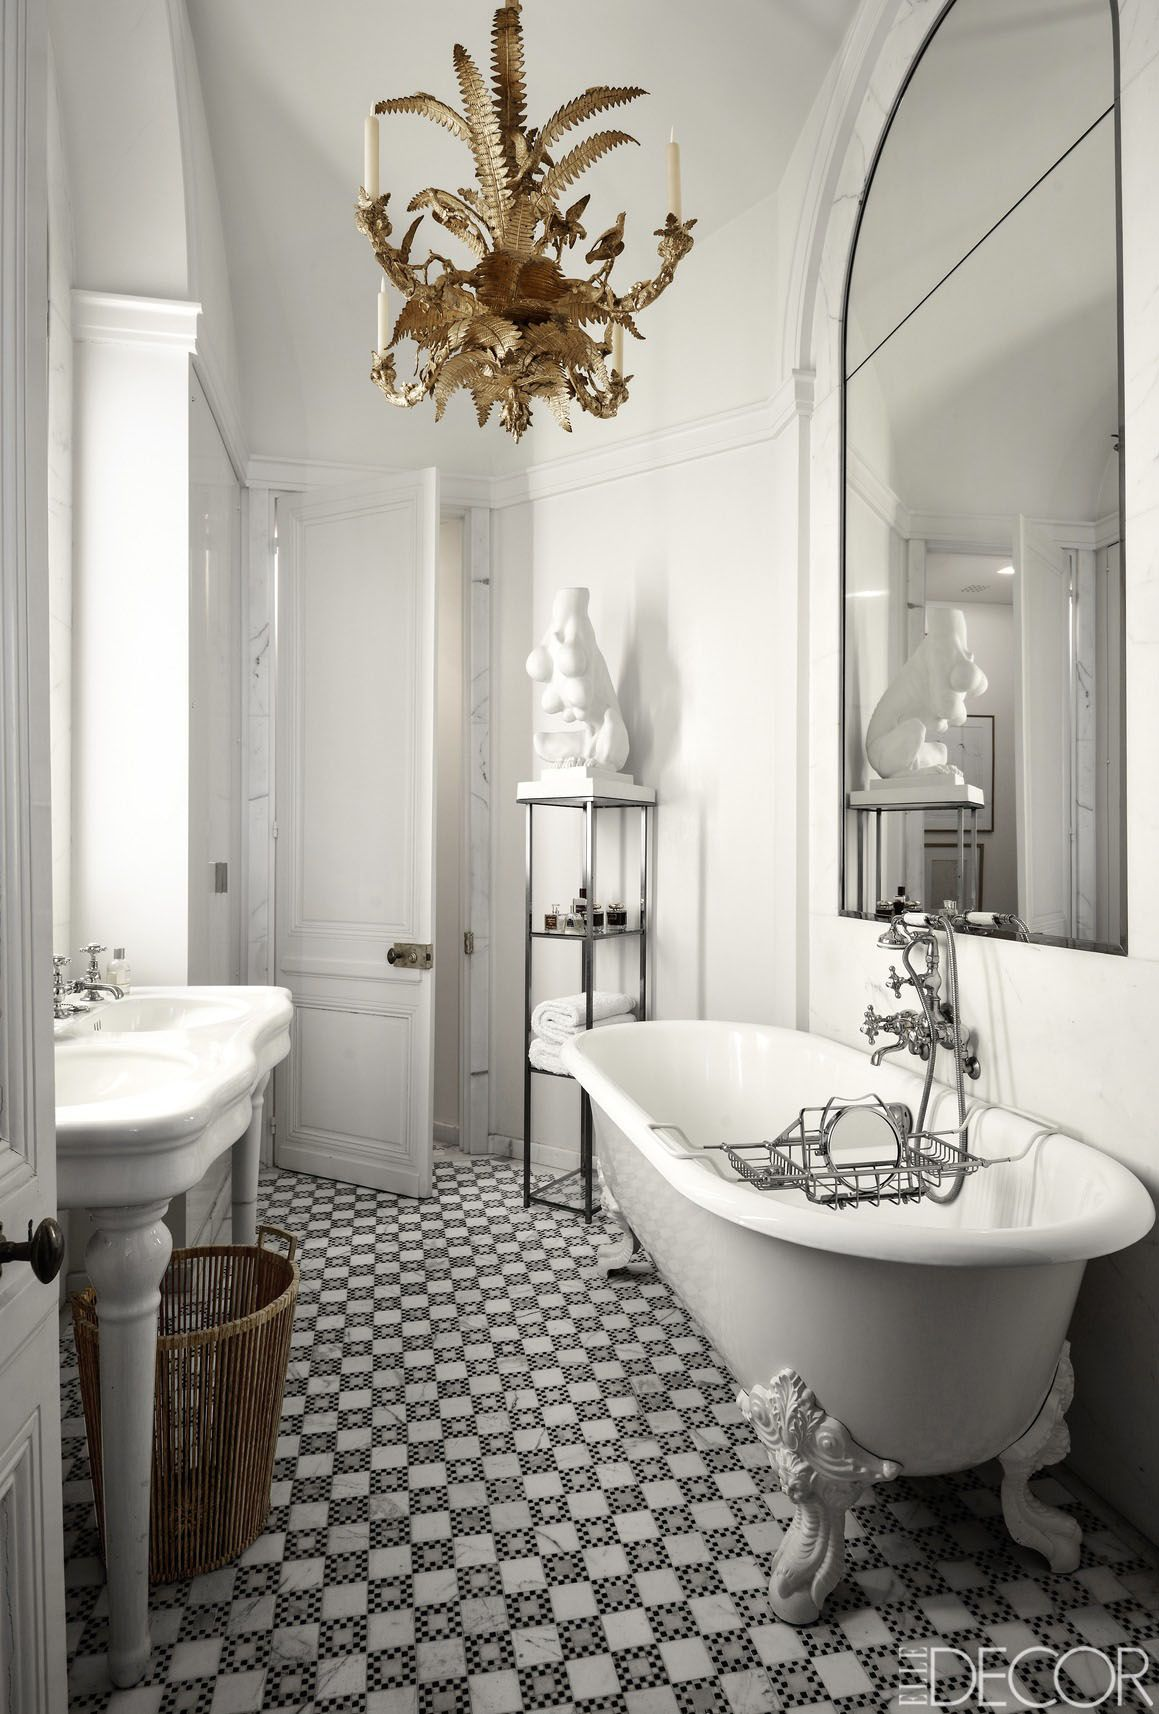 Black and white bathroom decor - Black And White Bathroom Decor 7